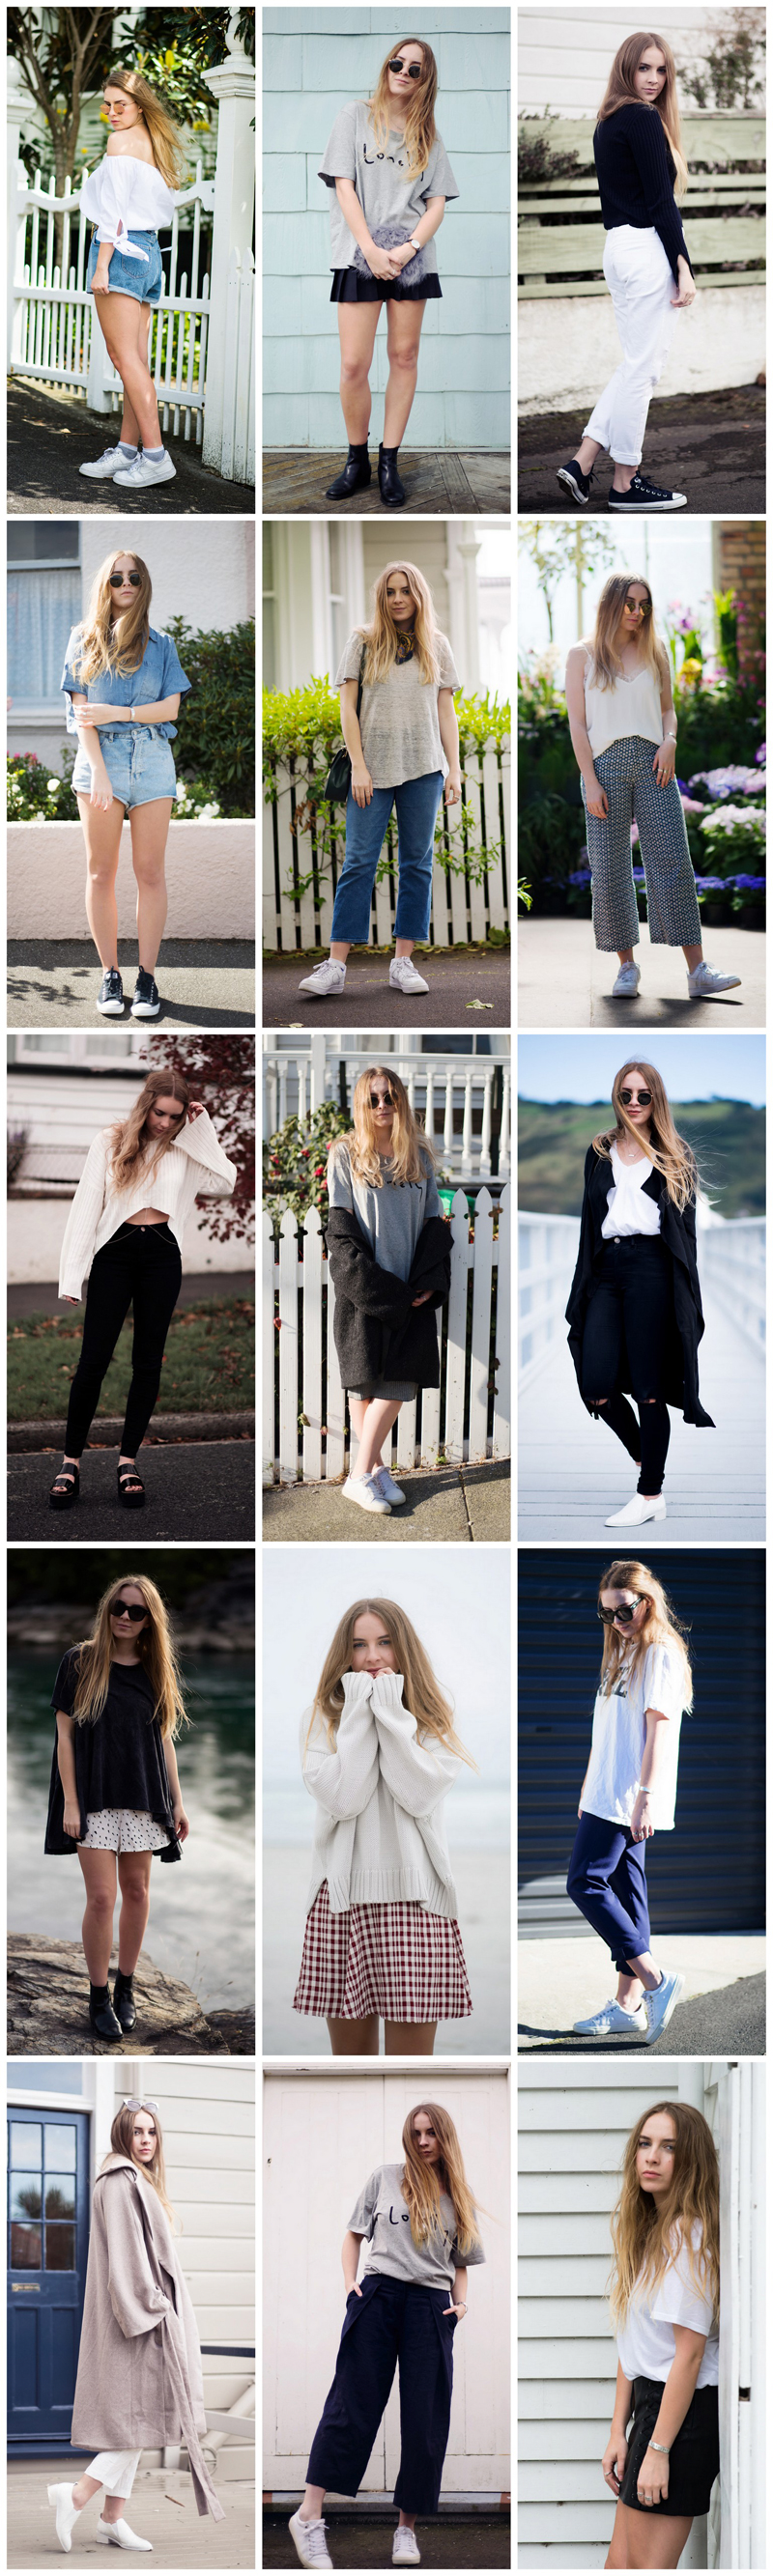 StolenInspiration.com | New Zealand Fashion Blogger Outfits 2015 Style